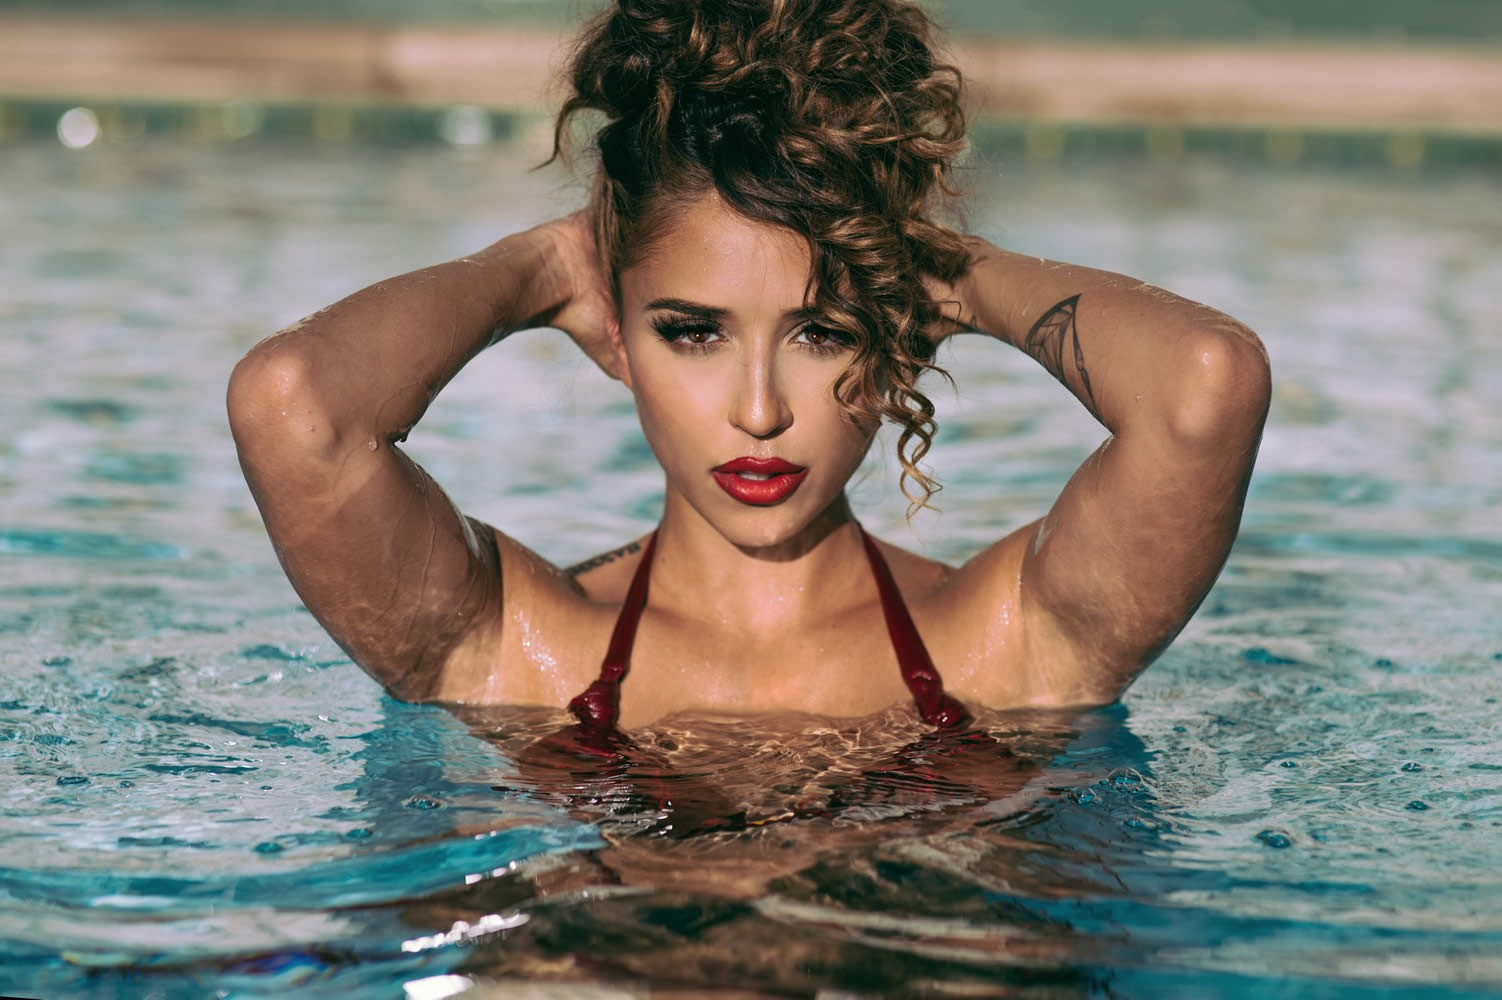 Tianna Gregory For Desktop Background